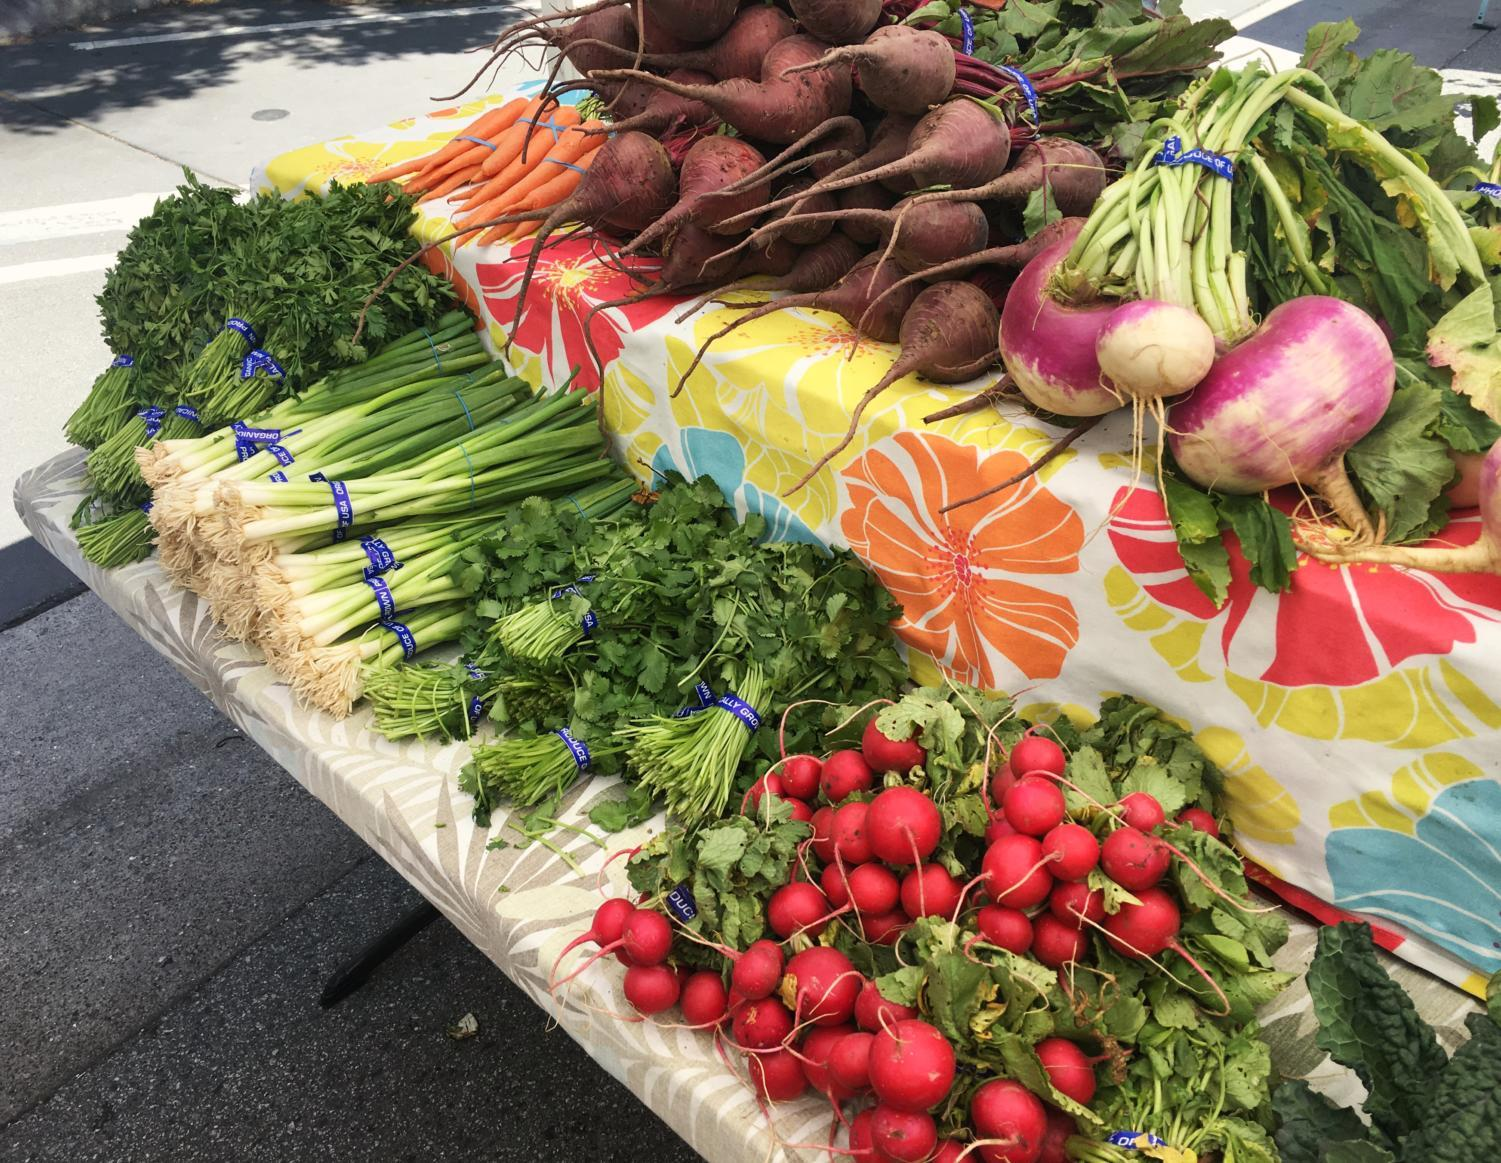 Vegetables for sale at the San Carlos Farmer's Market. The market features hundreds of products from popcorn to rutabegas.